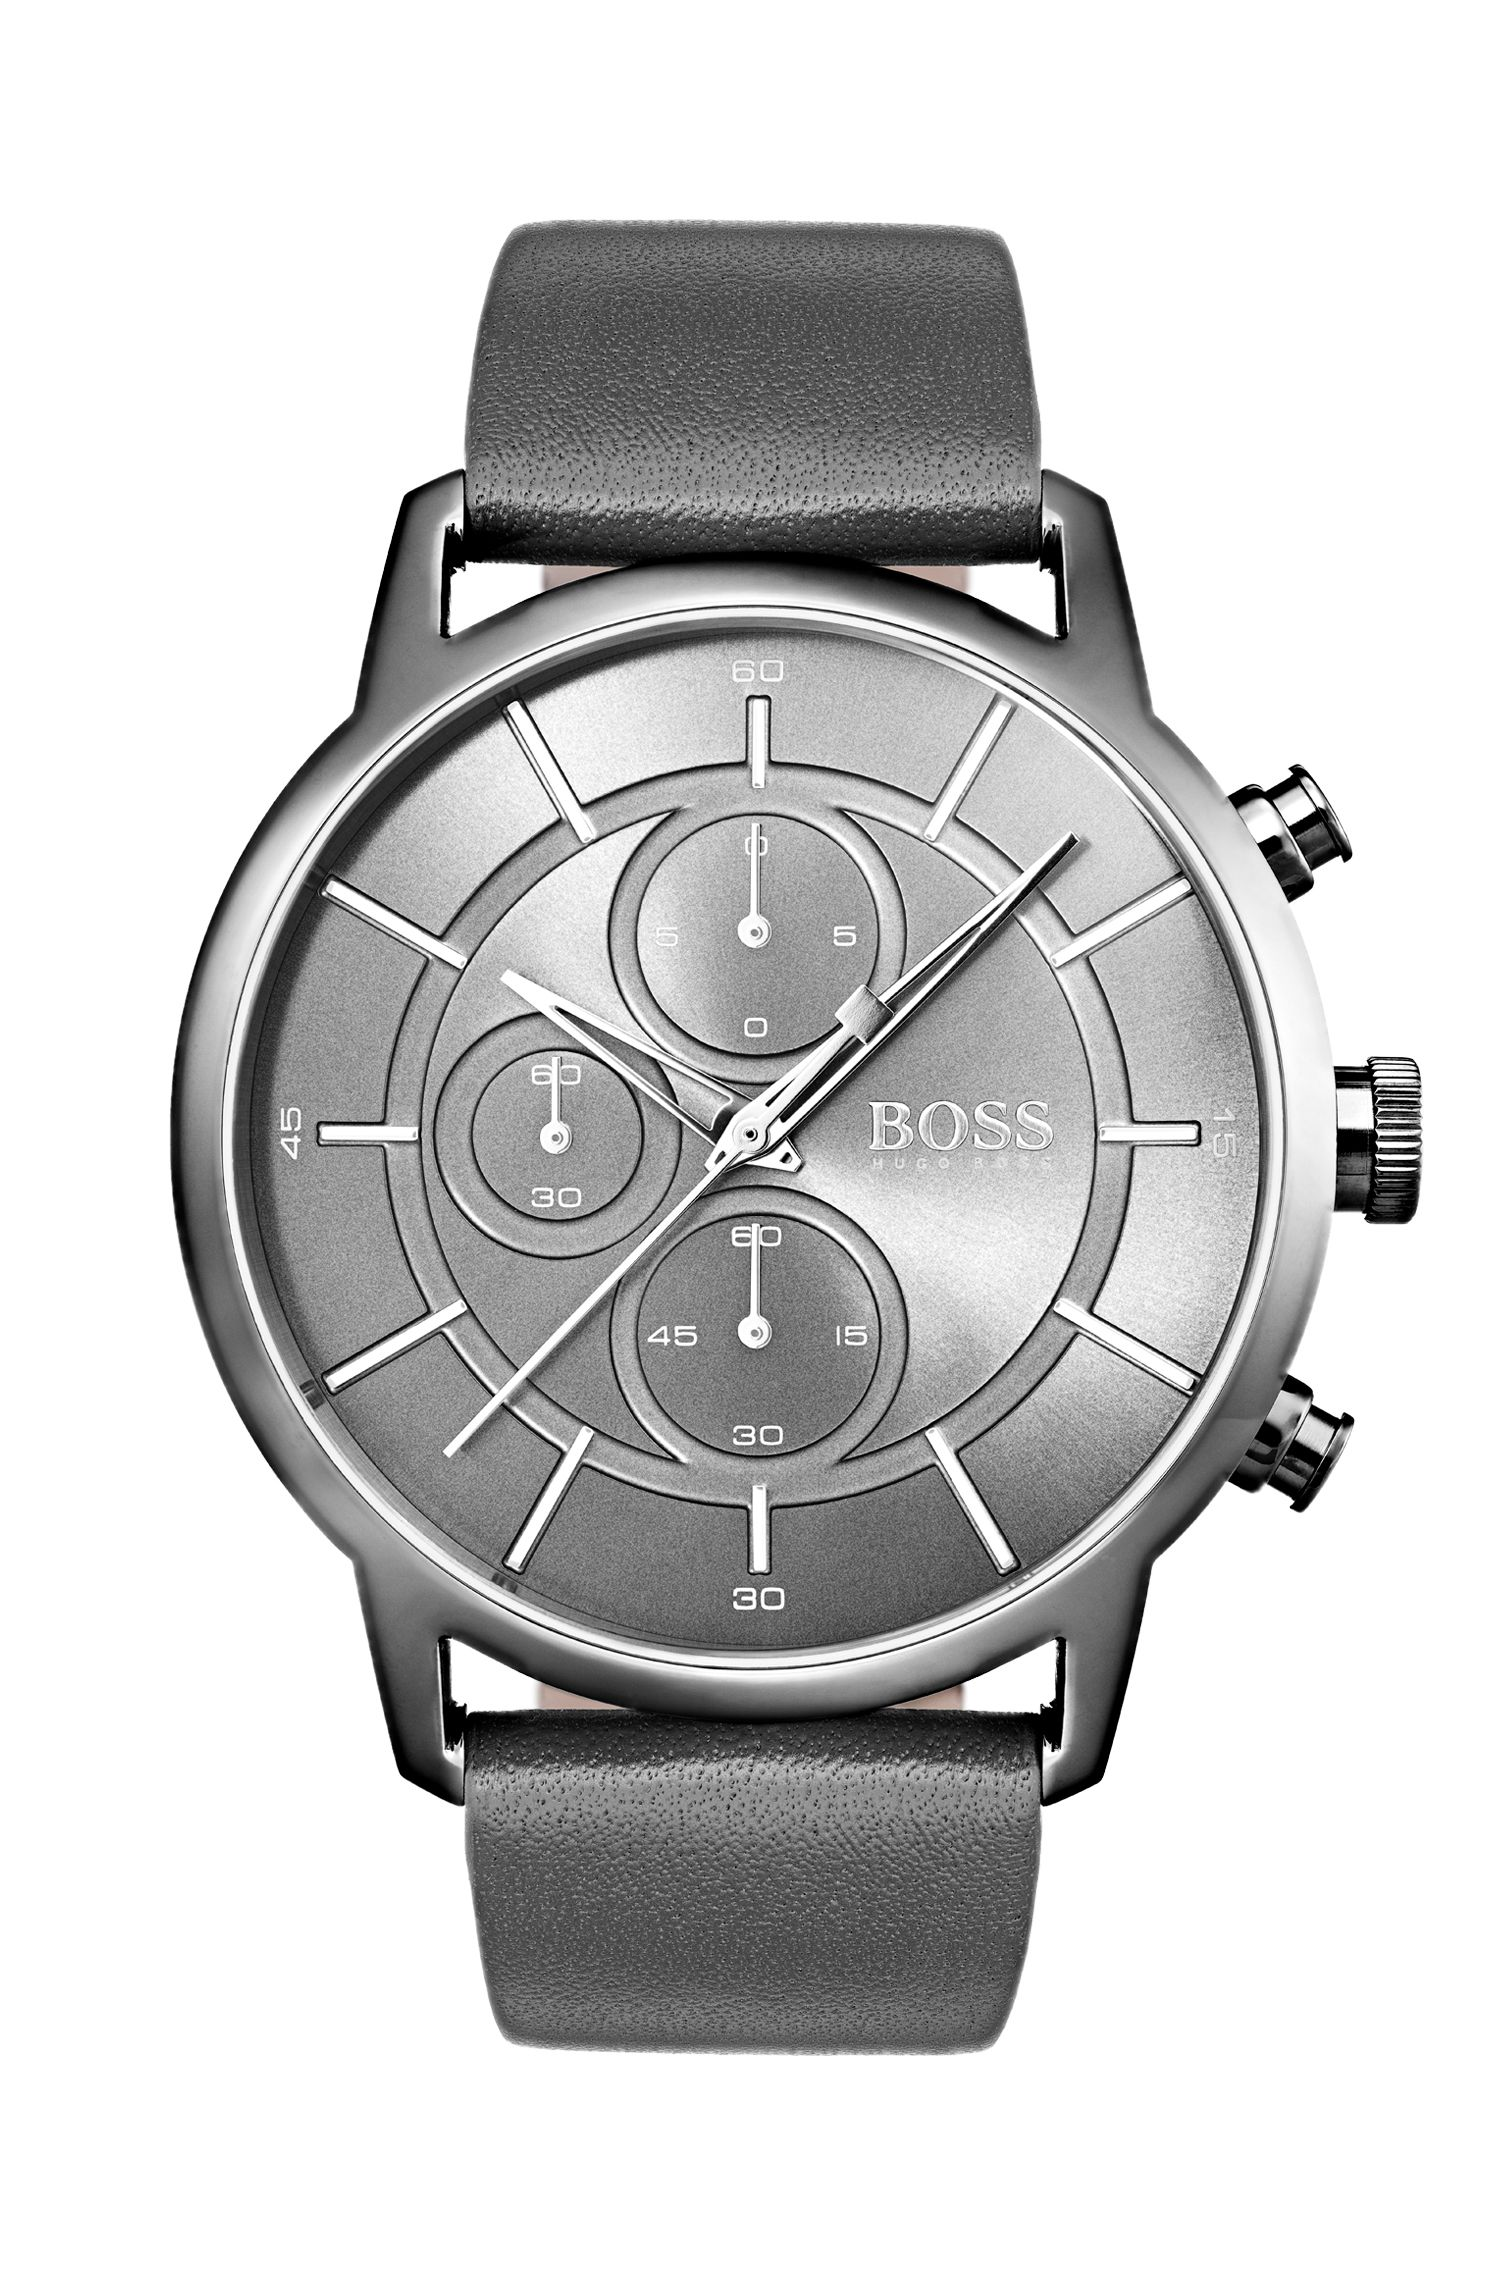 Bauhaus-inspired watch with grey leather strap, Grey